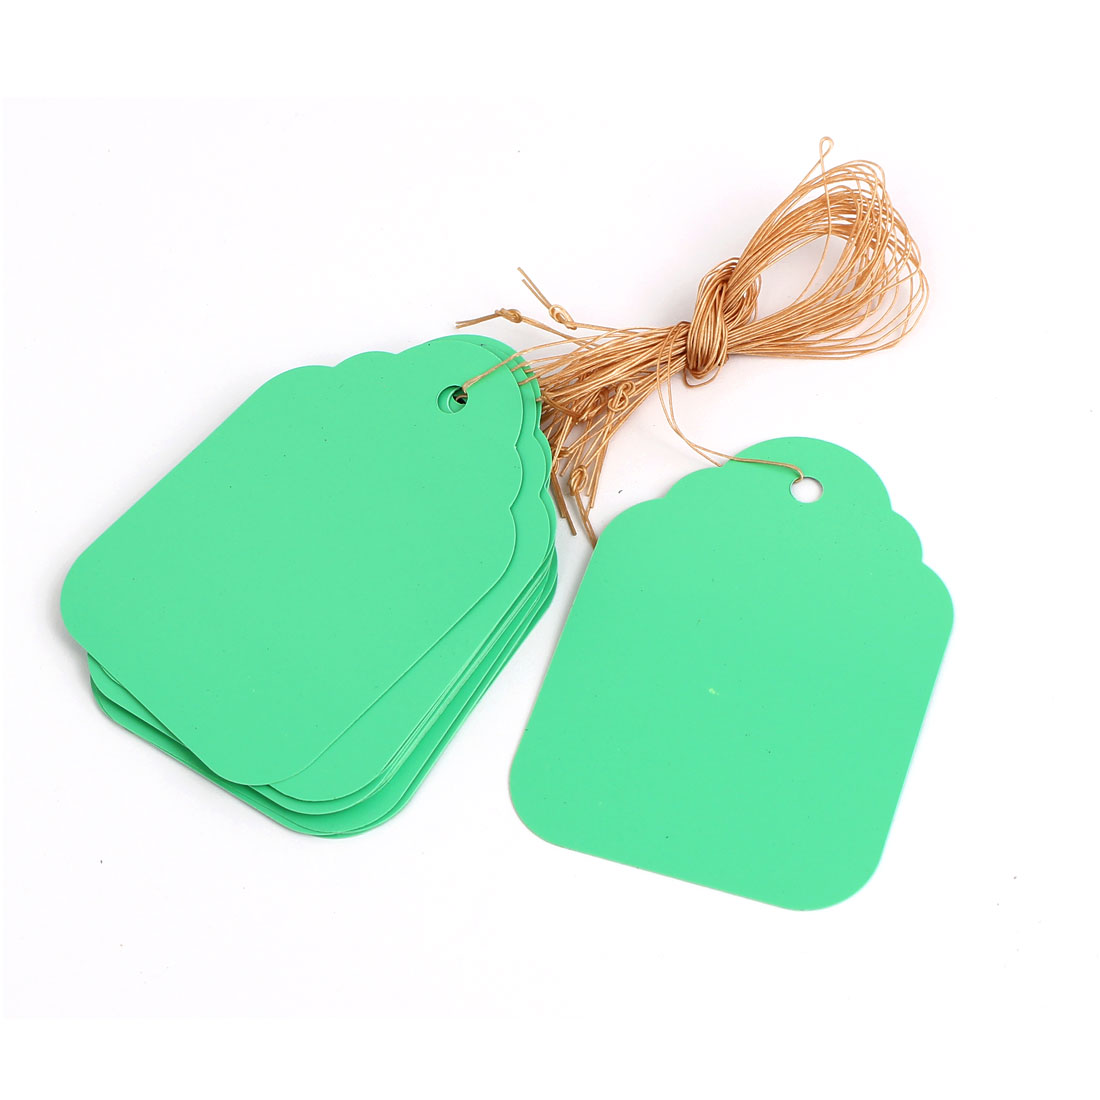 68mm x 49mm Plastic Nursery Garden Plant Seed Hanging Tag Label Marker Green 15Pcs